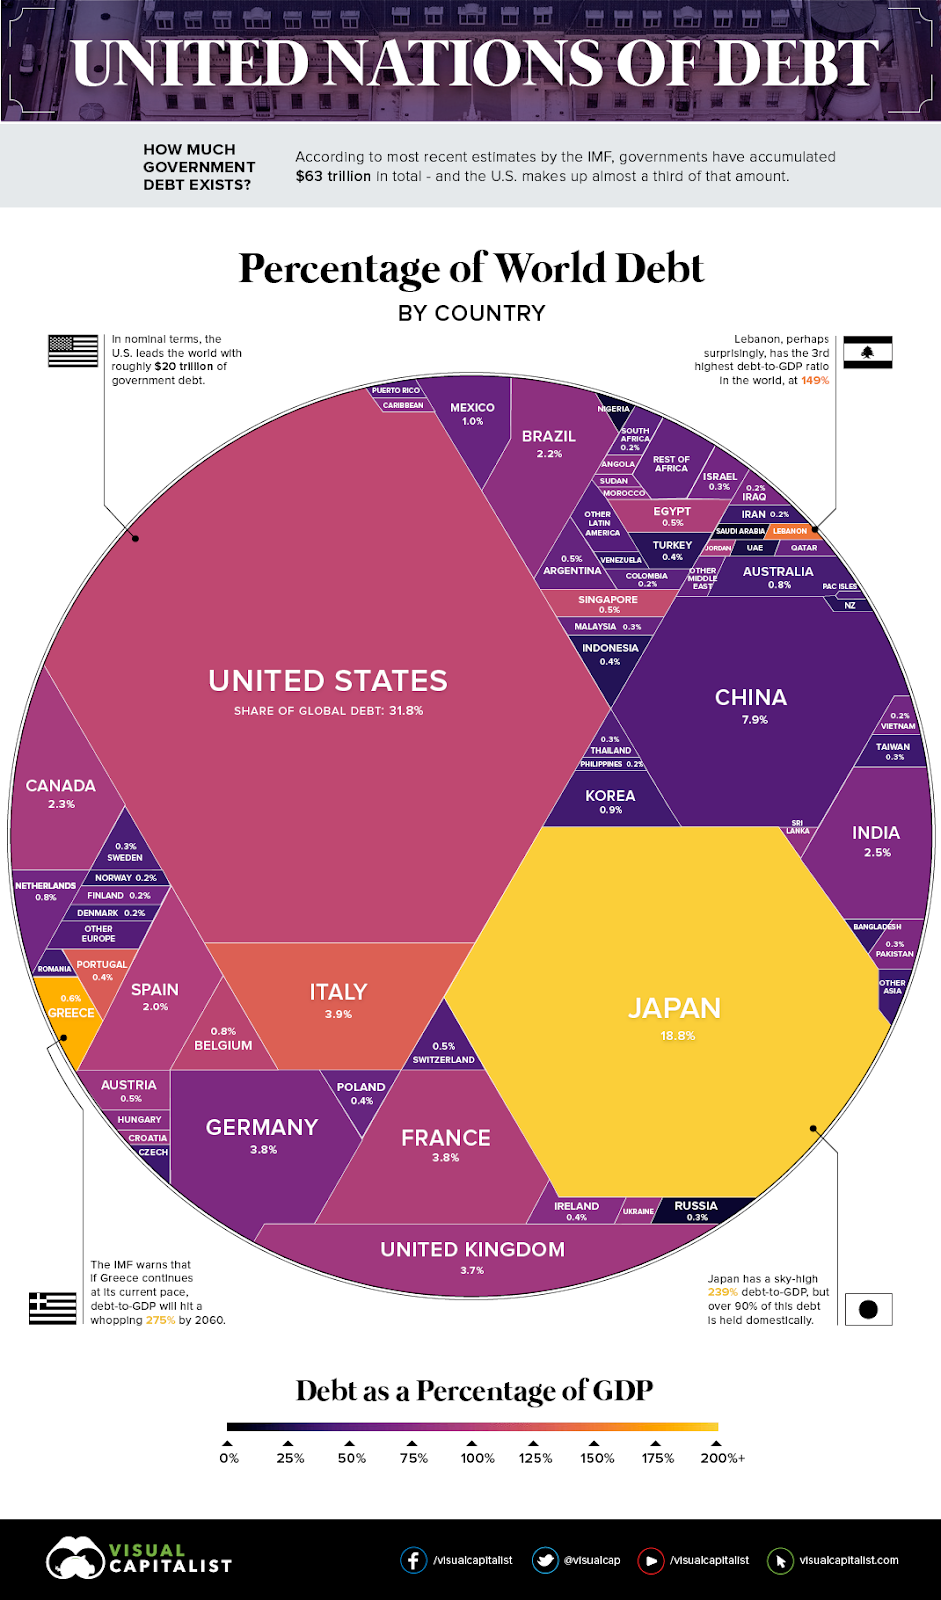 Visual Capitalist: United Nations of Debt